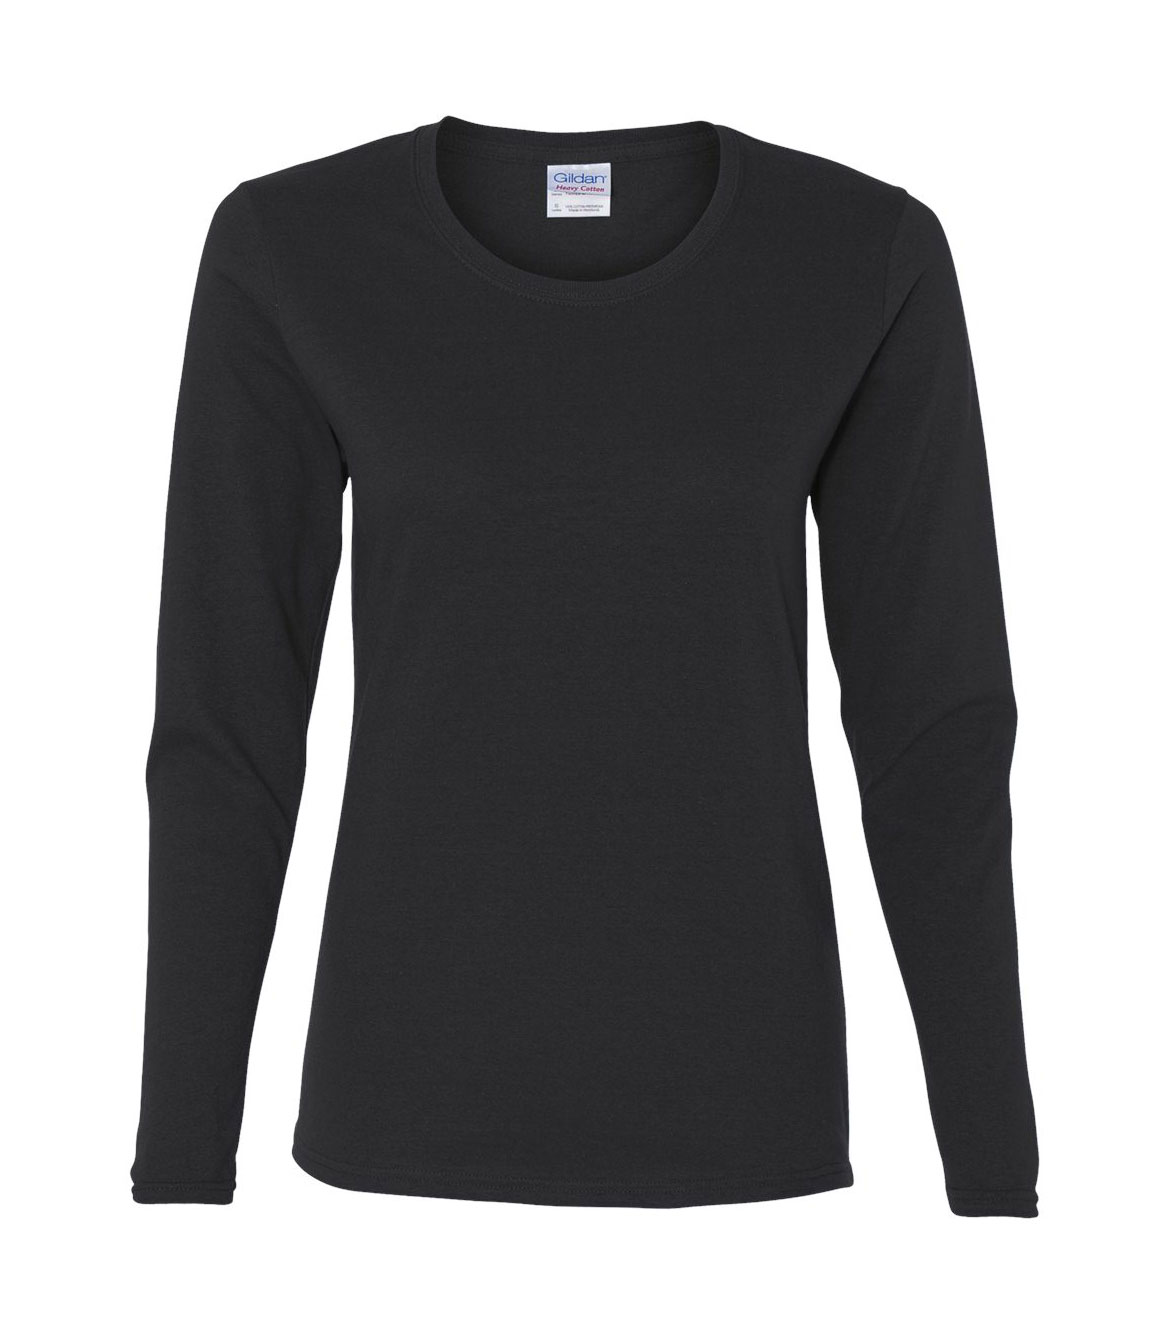 Gildan Ladies Long Sleeve T-shirt